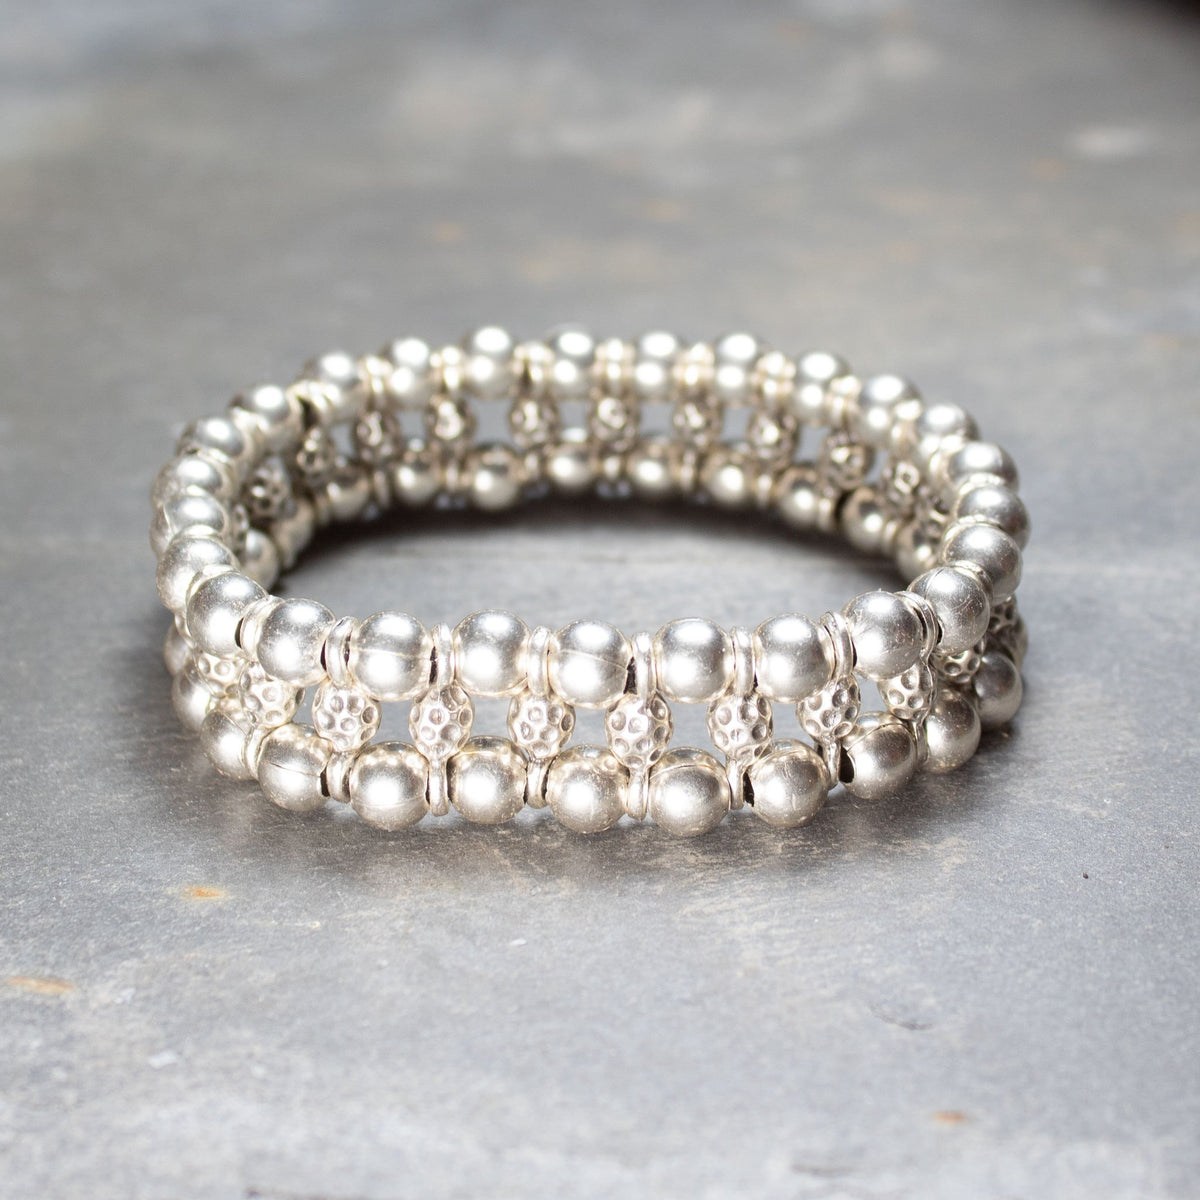 Triple stacked elasticated bracelet | Bracelet - The Naughty Shrew